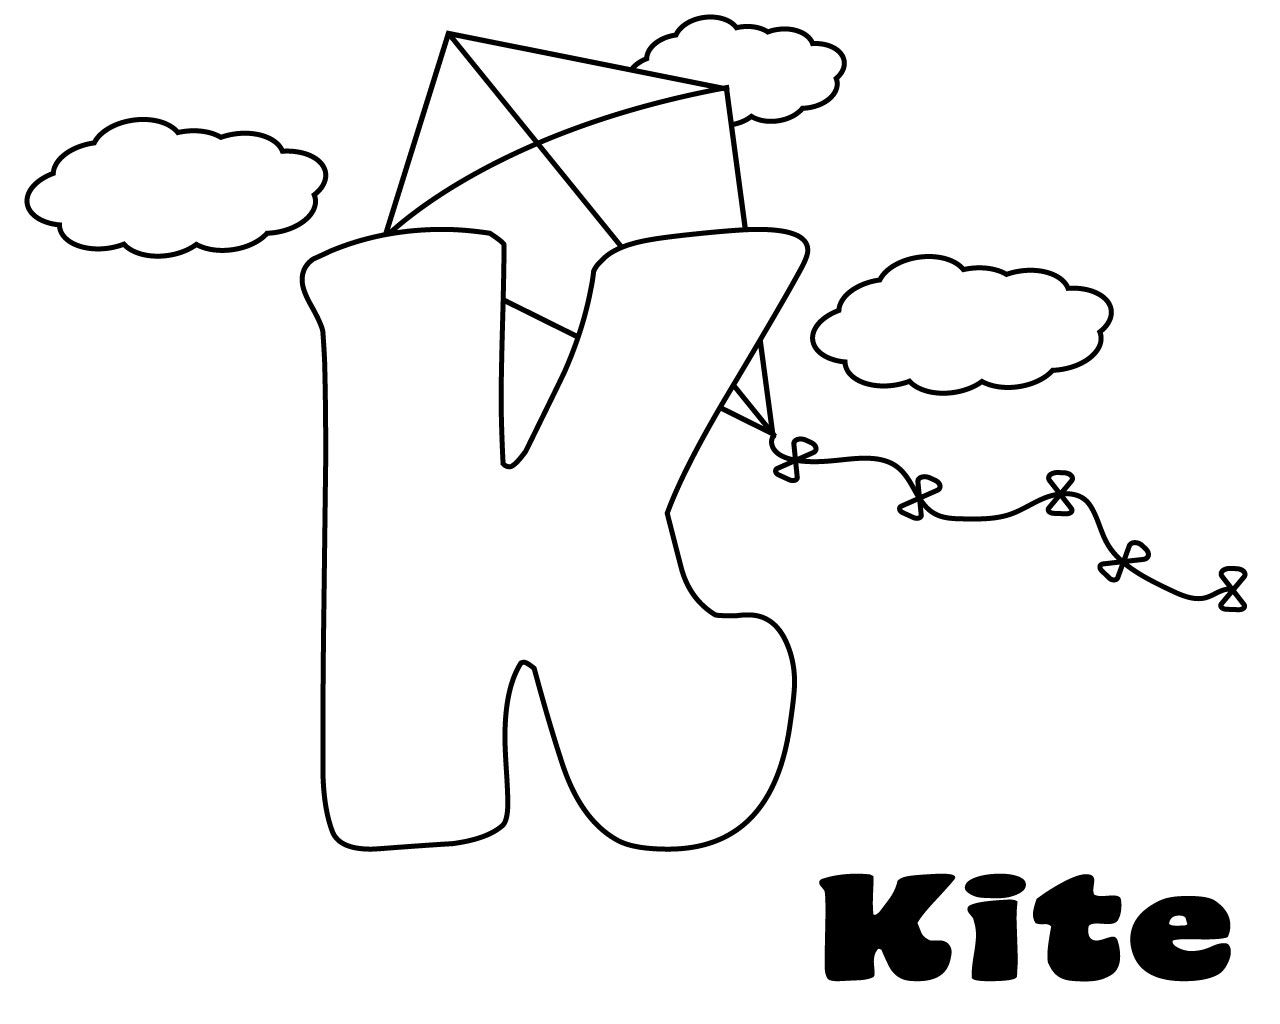 Letter K Coloring Pages For Preschoolers